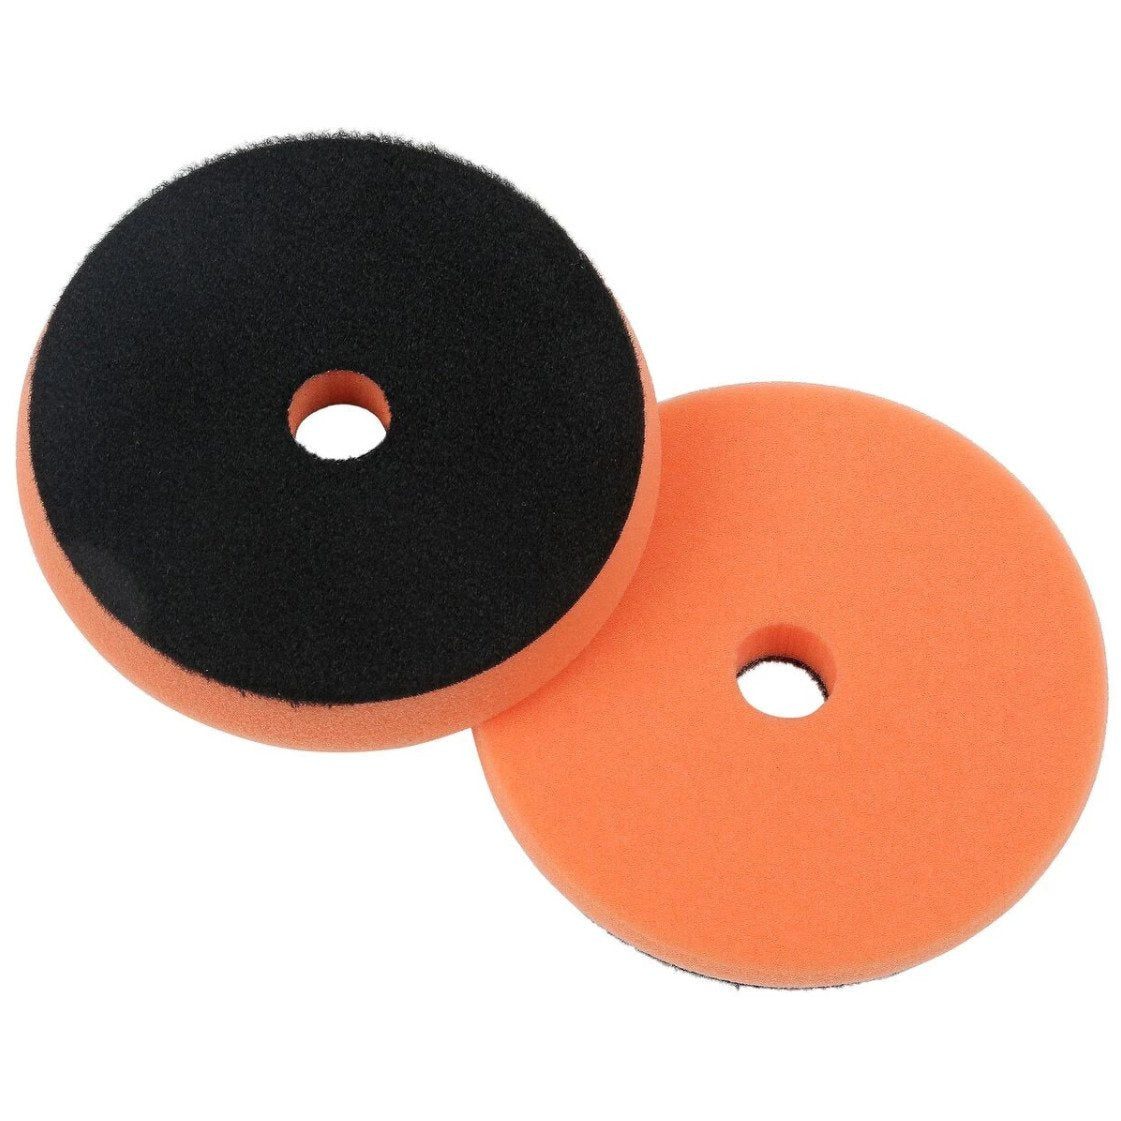 Car Detailing products | Car Detailing products on sale | SDO  Polishing Pad | Orbital Pad